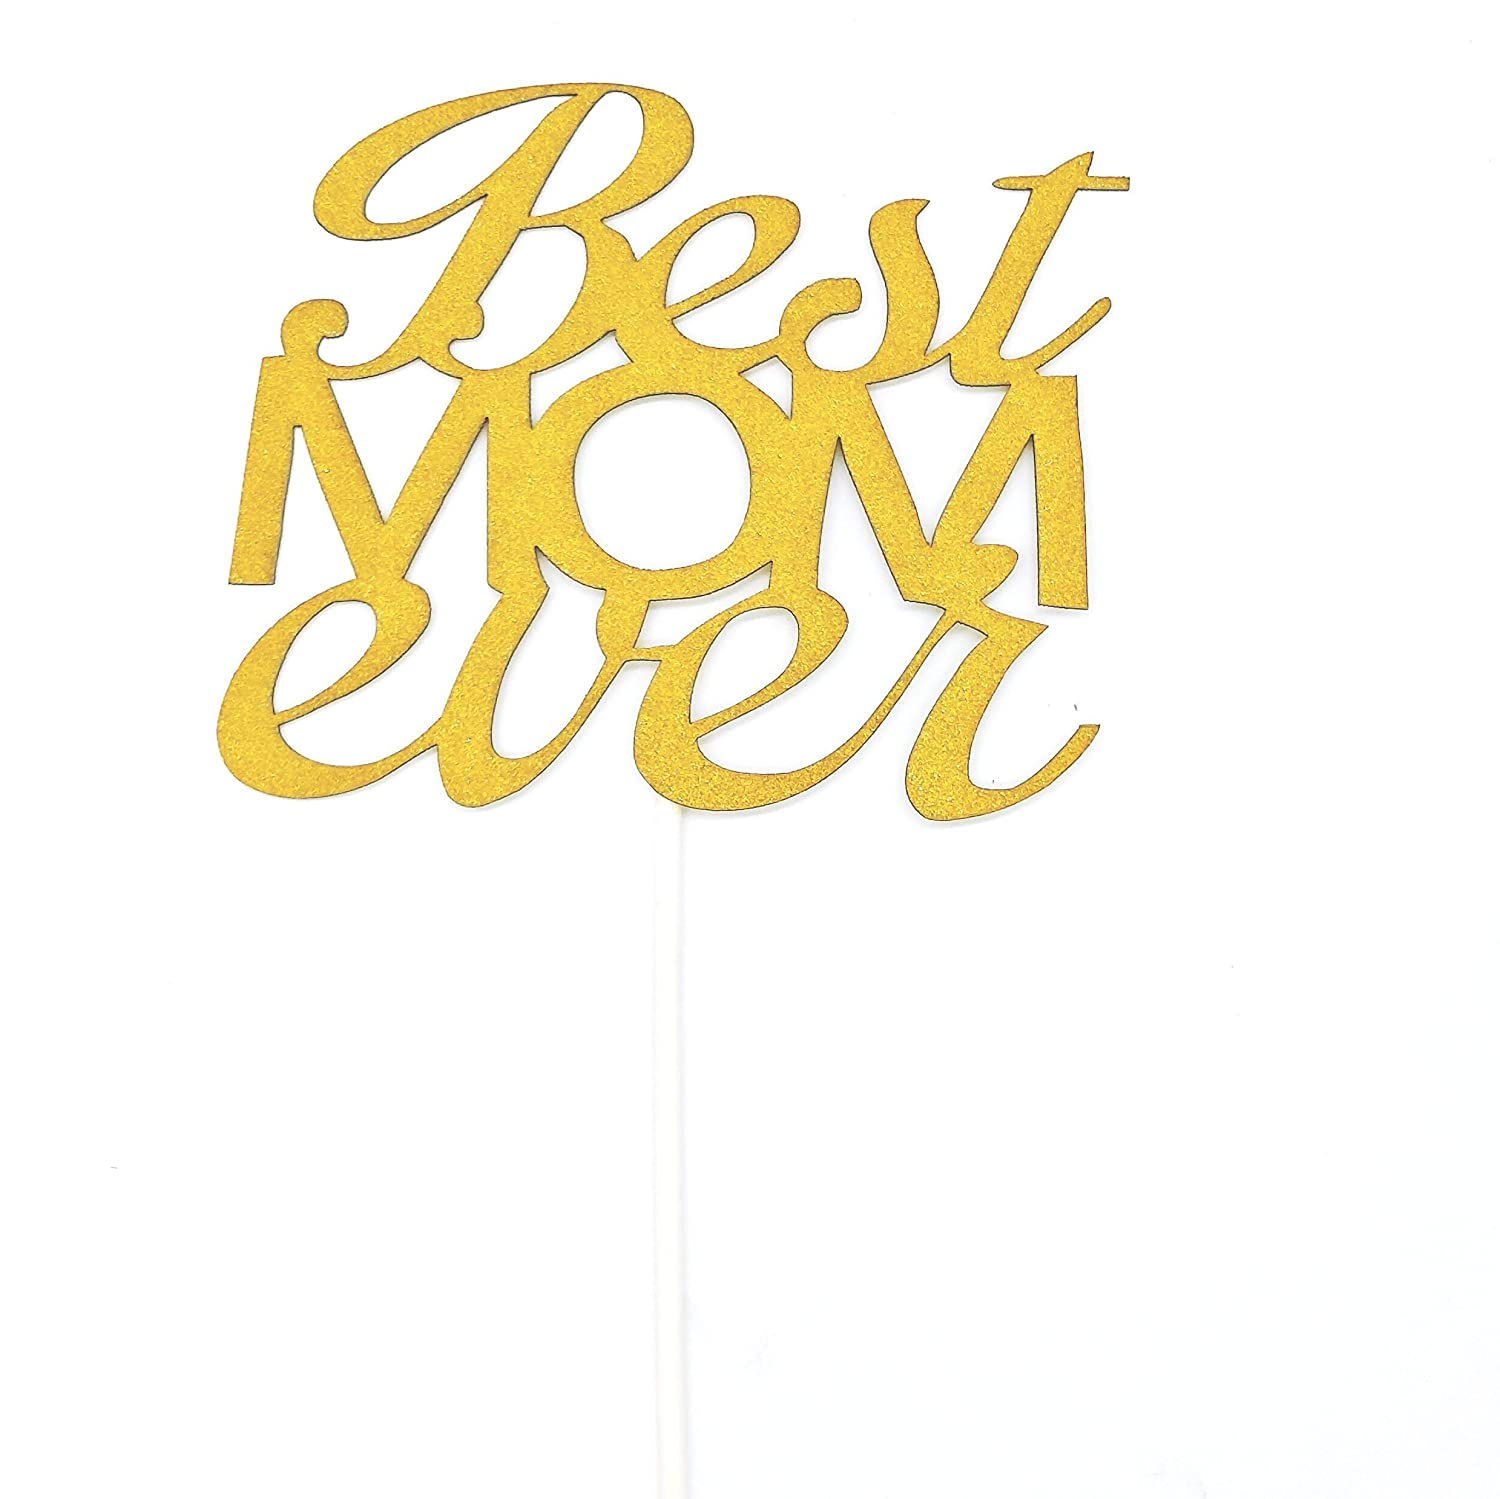 Gold Glitter Best Mom Ever Cake Topper for Mother's Day, Mother's Birthday Cake Decorations Set of 2